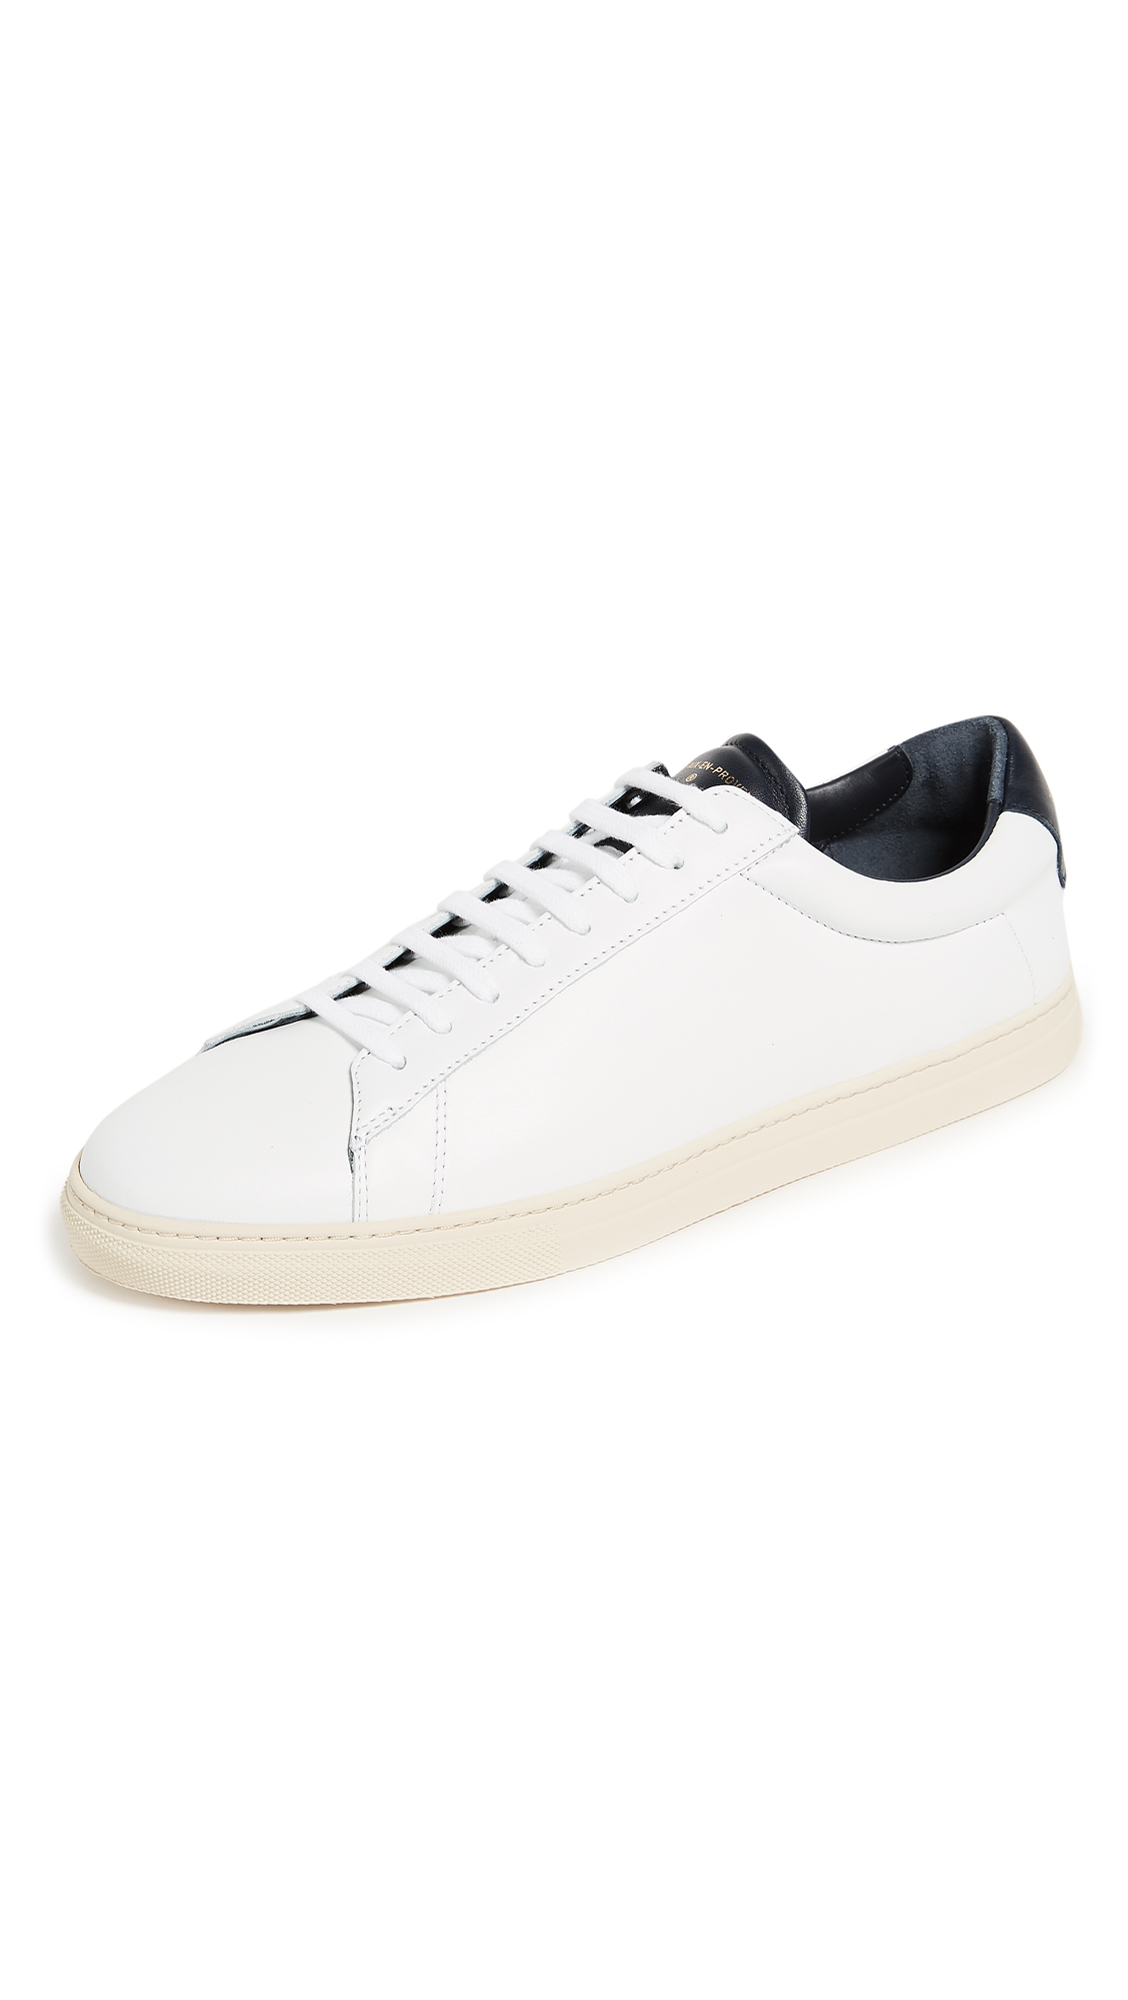 polo ralph lauren shoes singapore sling bandwidth requirements